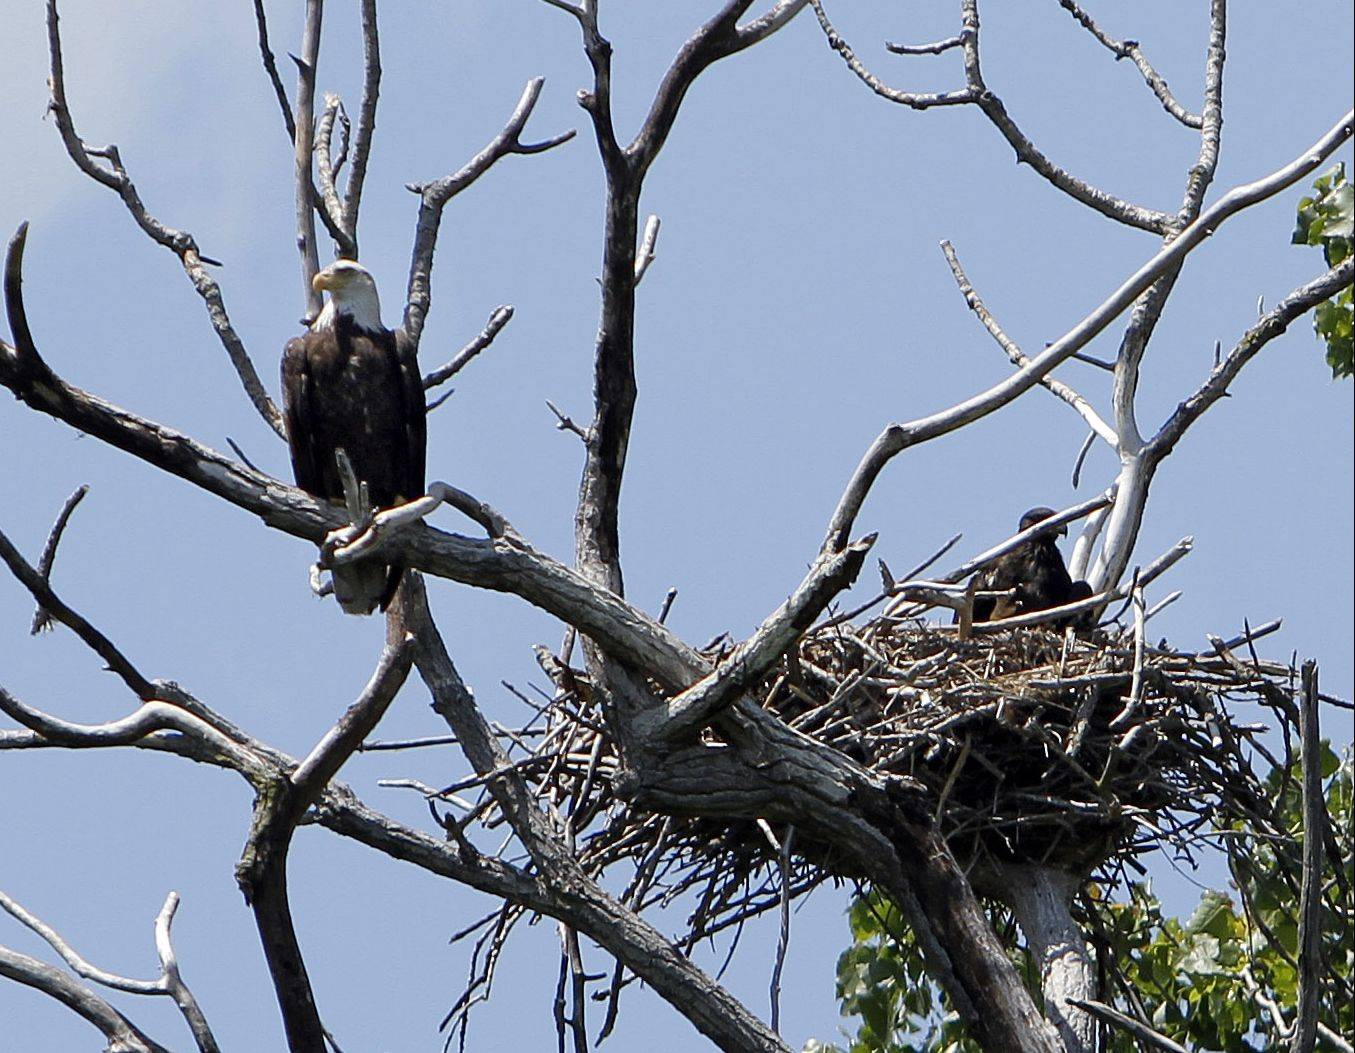 A bald eagle keeps watch over one of its offspring in a nest along the Fox River in southwestern Lake County. While it is not unheard of to see a bald eagle on the wing, nesting pairs like the one discovered this spring are rare in the Chicago area.